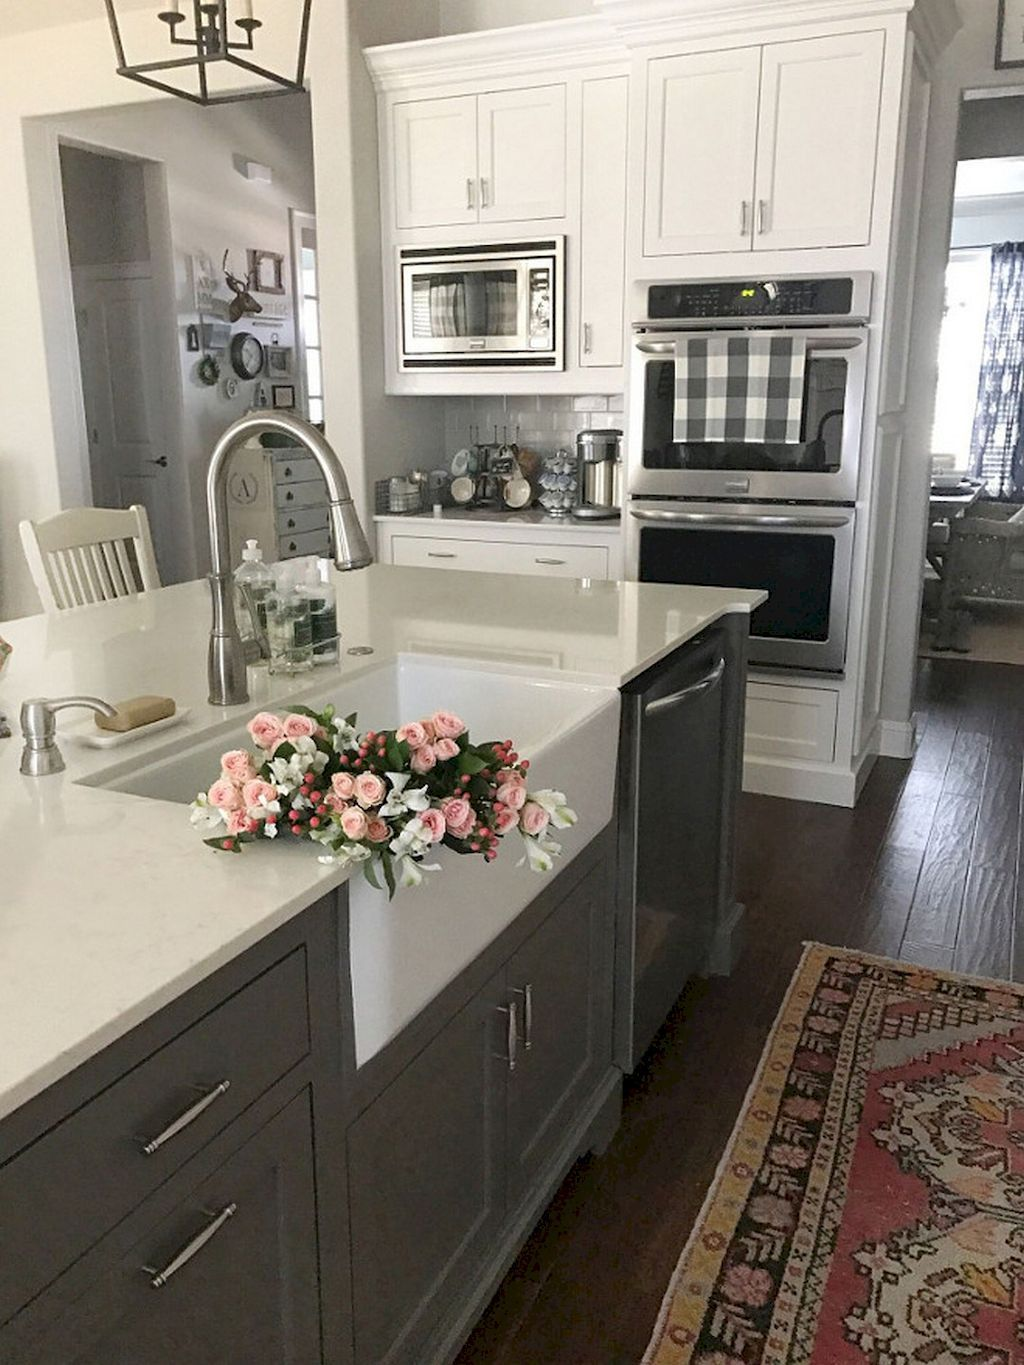 Affordable farmhouse kitchen ideas on a budget (33